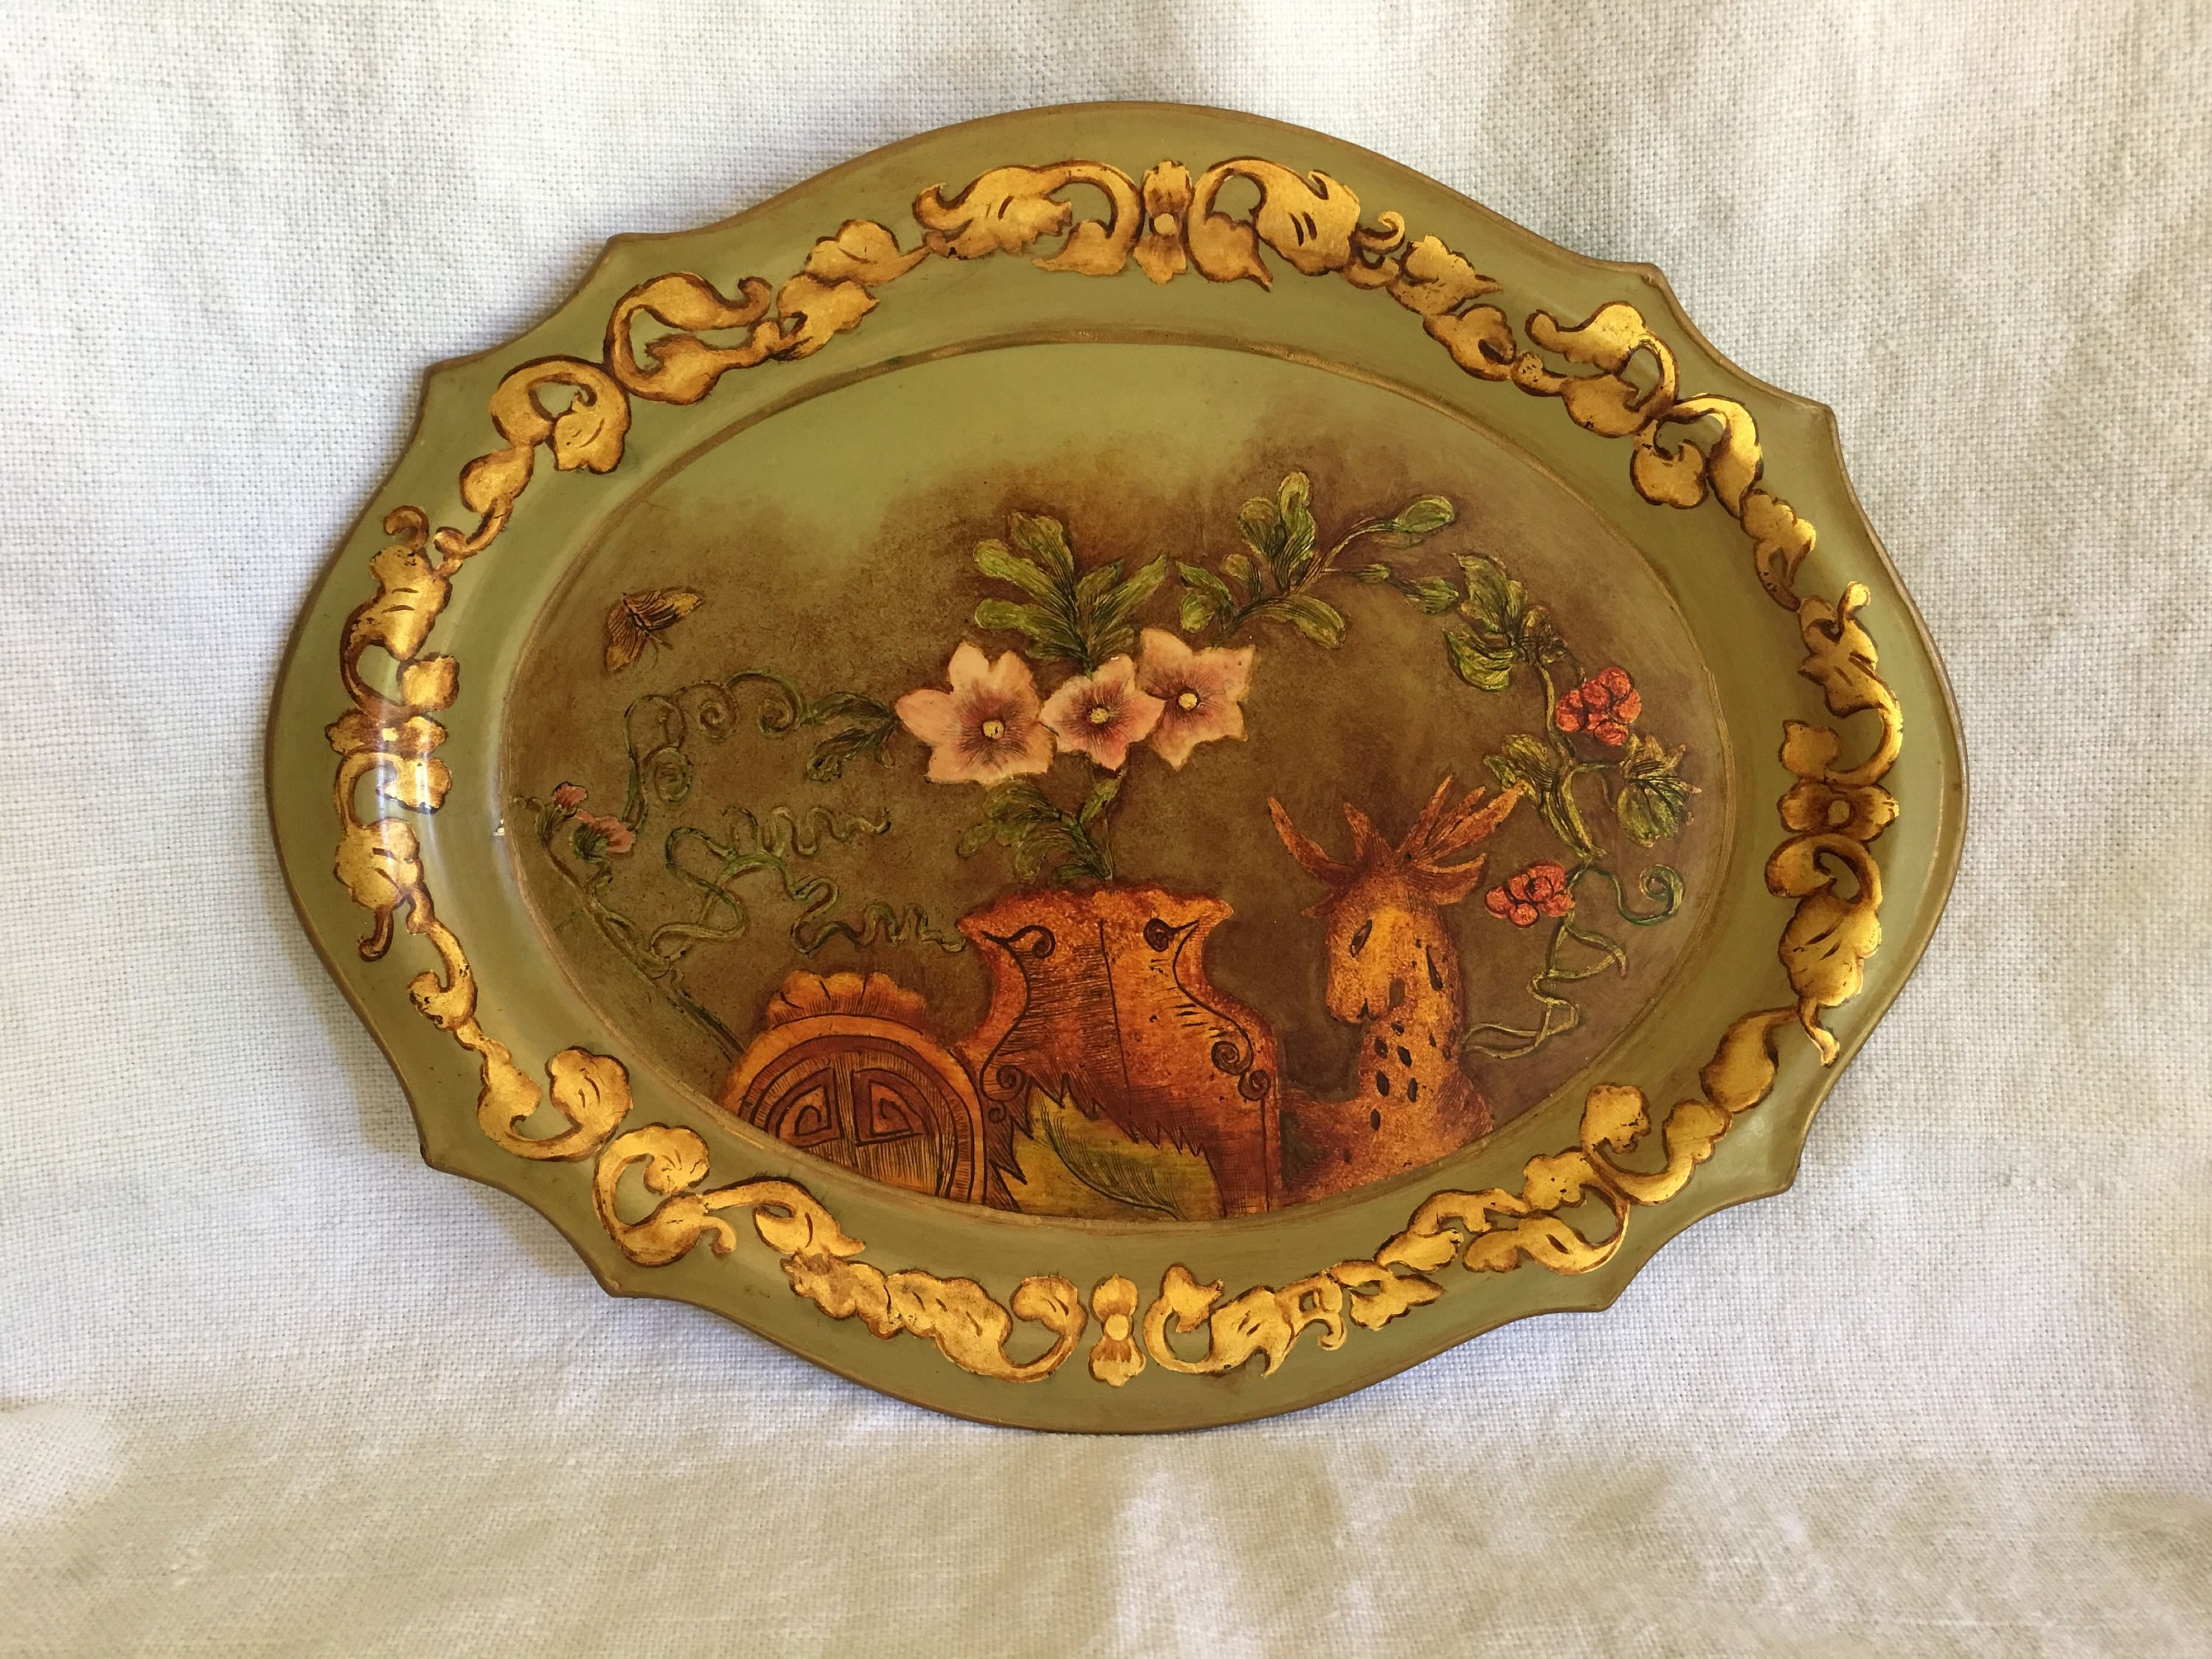 Beautiful hand painted dresser or jewelry tray that was done in 1962 by C.C.W, as indicated on the bottom. It is embellished with gold paint and depicts flowers, a butterfly, a vase and a deer. It has a beautiful cottage chic look to it and would compliment your decor nicely. It measures 8 wide,